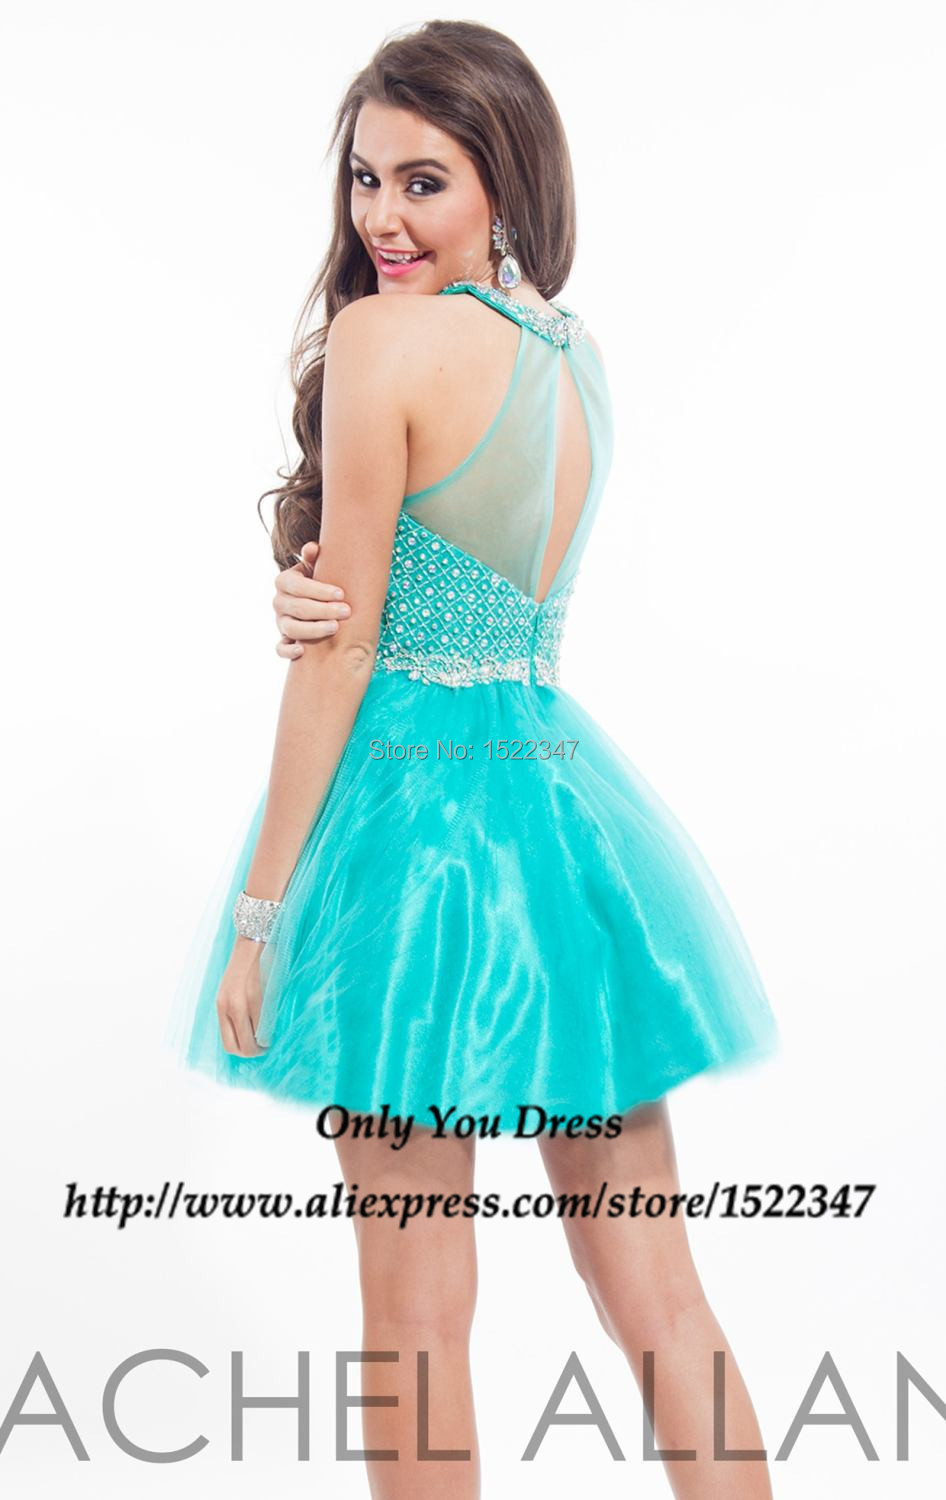 a0e8677c7f Bling Bling Crew Turquoise Purple Pearls Beads 2015 Cocktail Dresses for Girls  Semi Formal Homecoming Dress Tulle QE397-in Cocktail Dresses from Weddings  ...